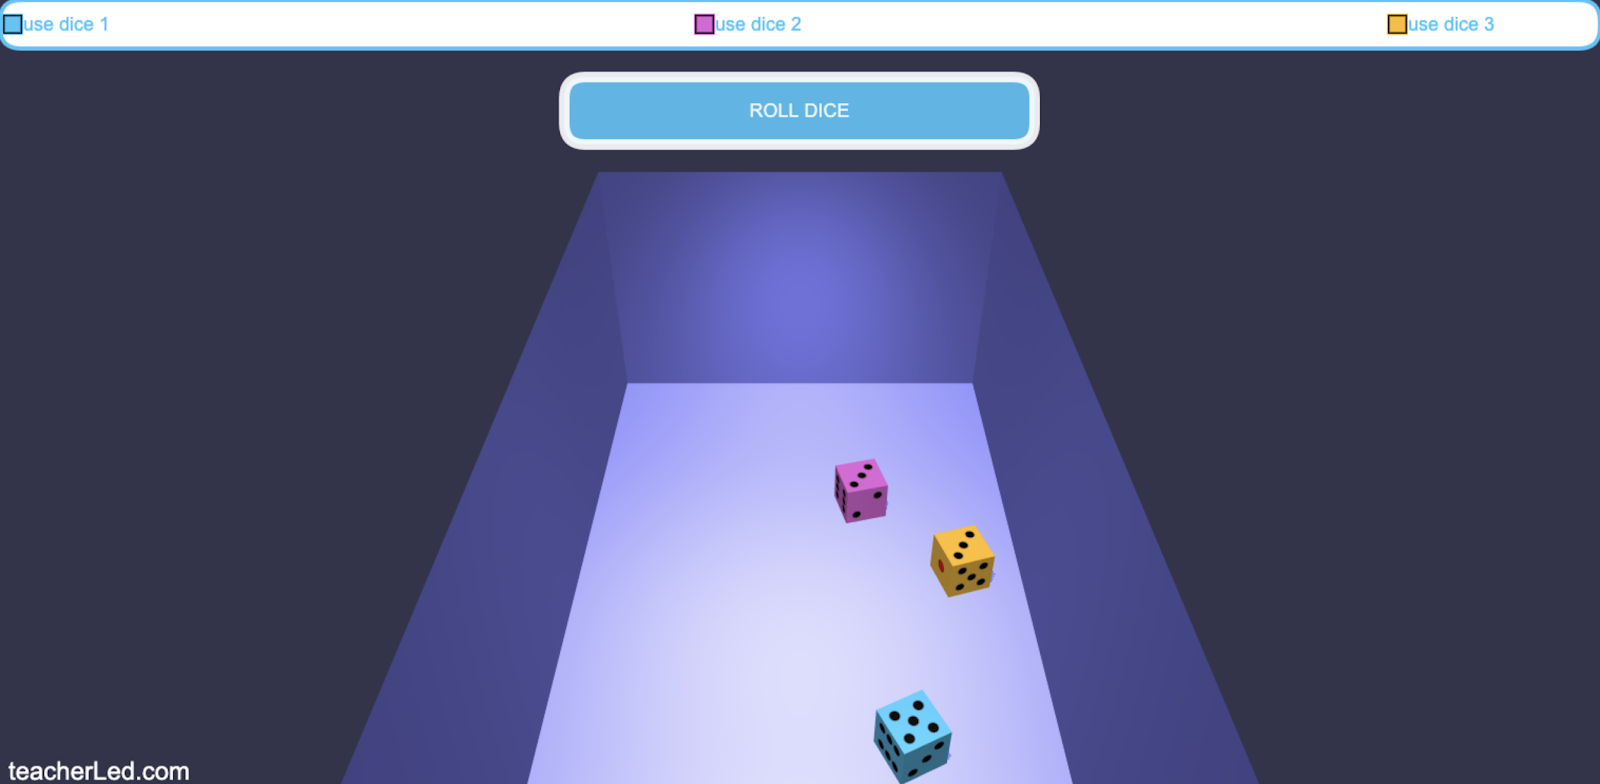 My Top 5 Favorite Digital Dice Websites that can be used on most devices like Chromebooks, computers, laptops, iPads and phones. Kid friendly and great for classroom use!